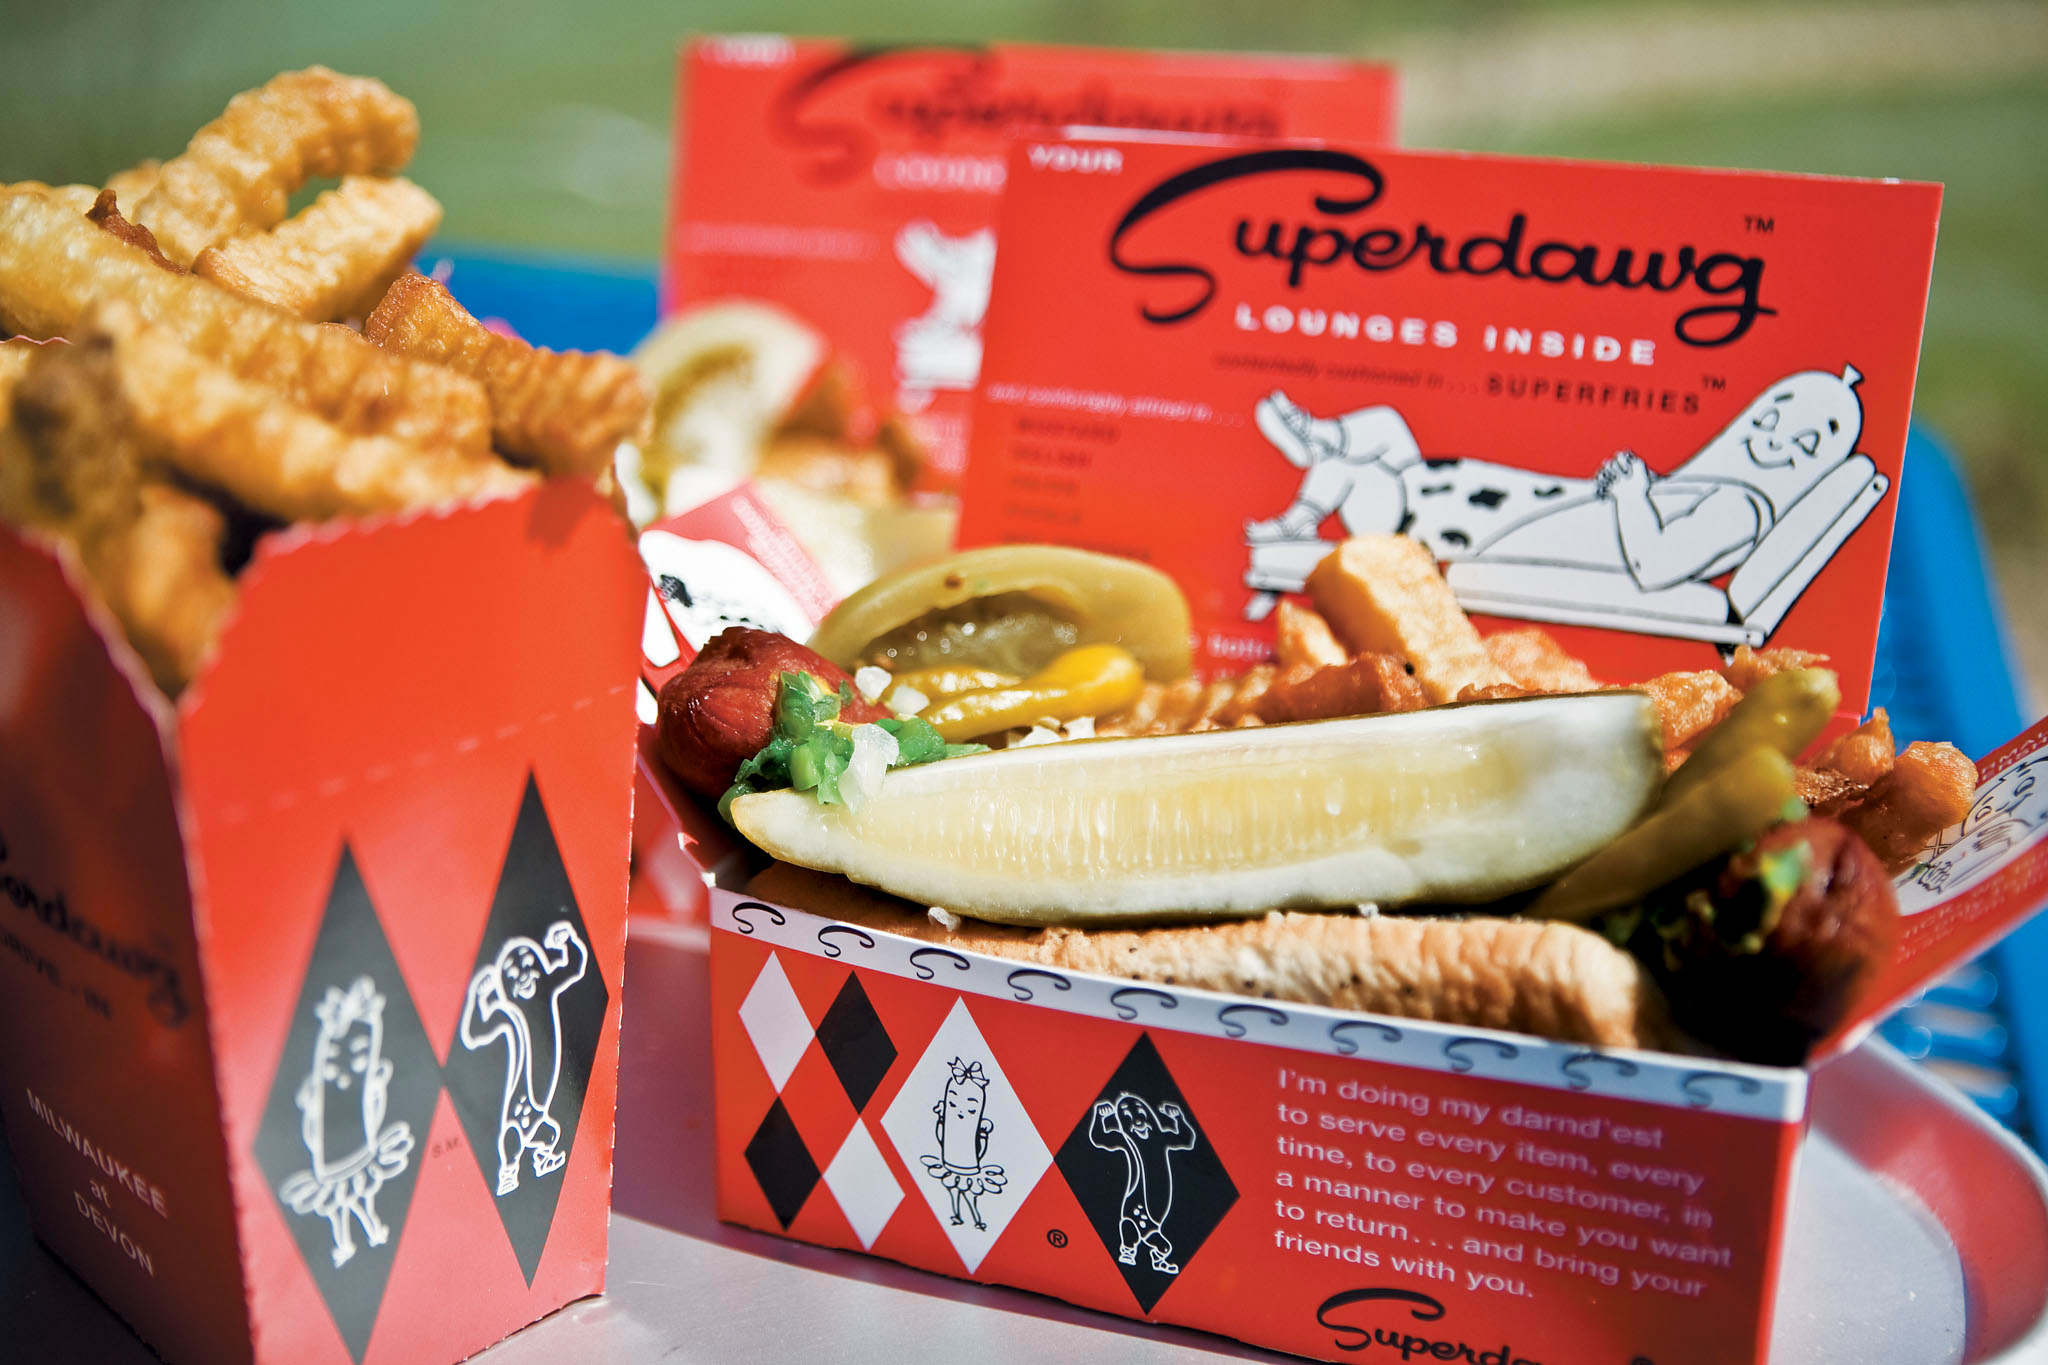 Try a Chicago-style hot dog at Superdawg